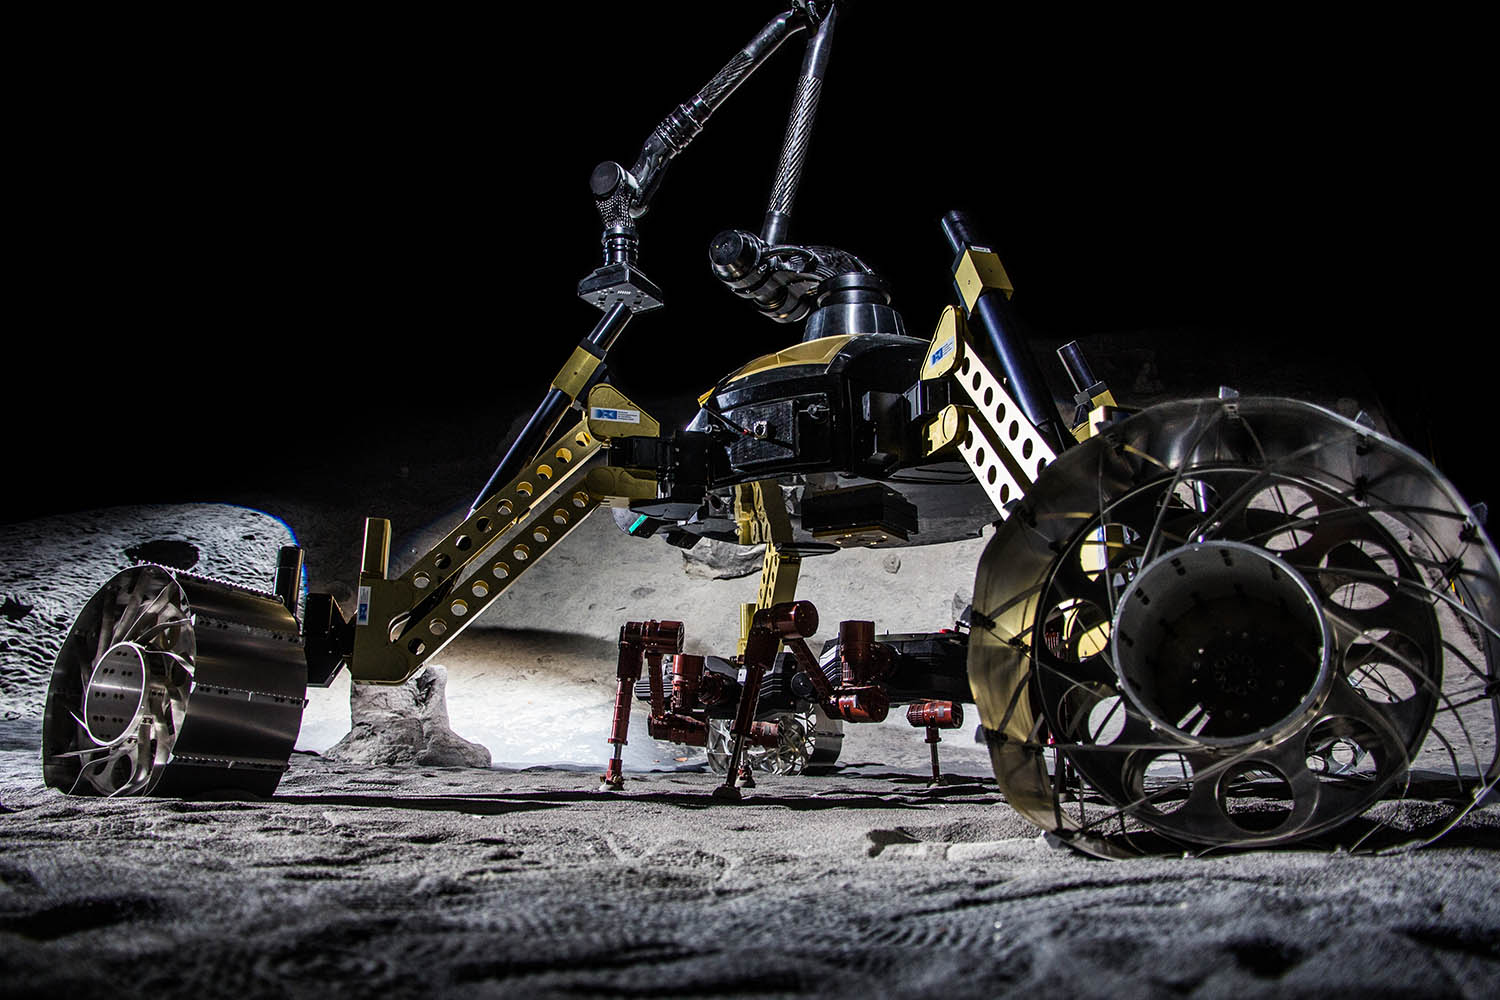 Undated. A photo released on Jan. 14, 2013 by the German Research Center for Artificial Intelligence (DFKI), shows a robot duo that could search for water one day on the moon in Bremen, Germany.